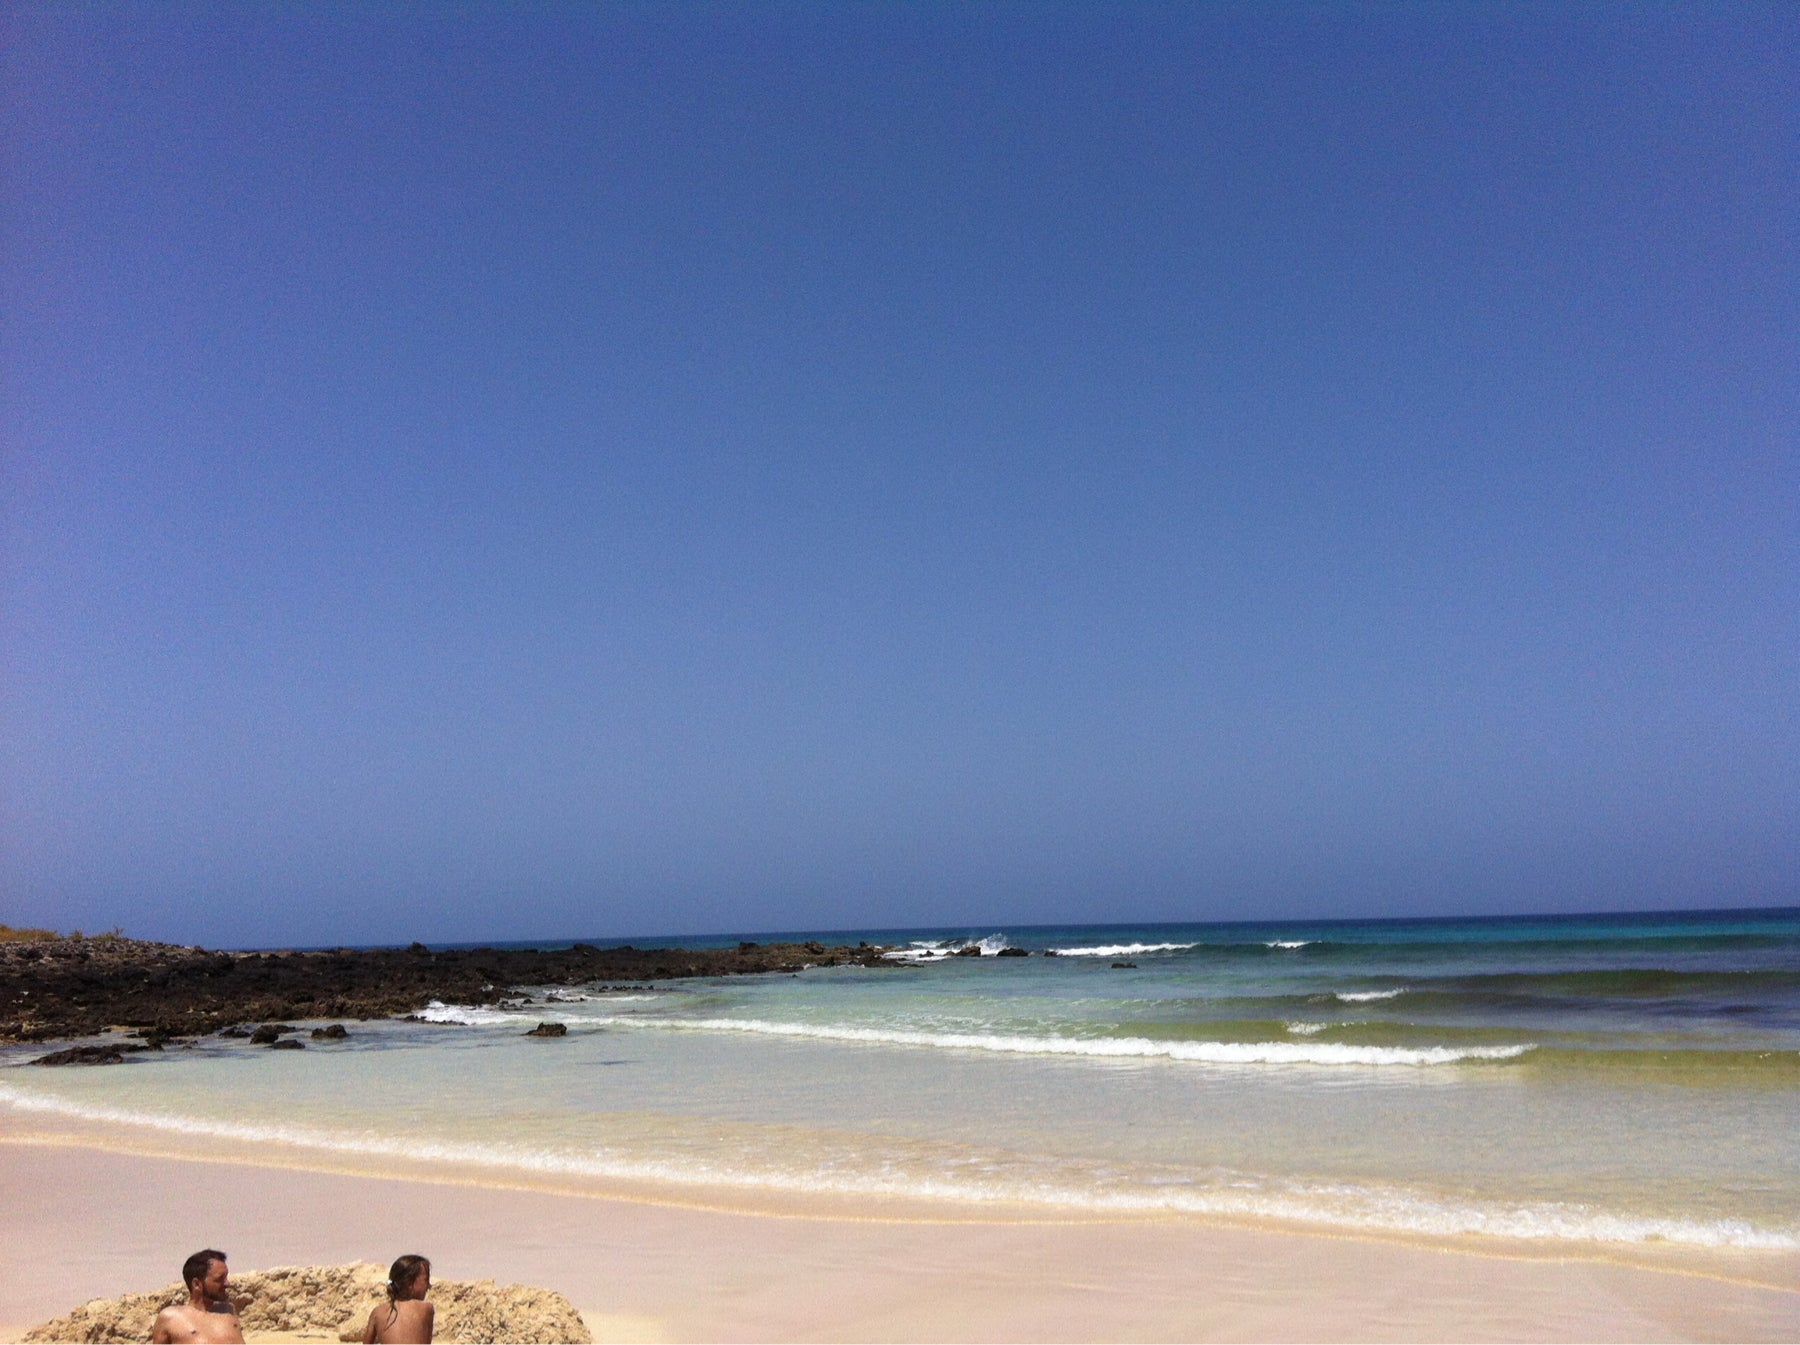 Mar en Playa de Corralejo